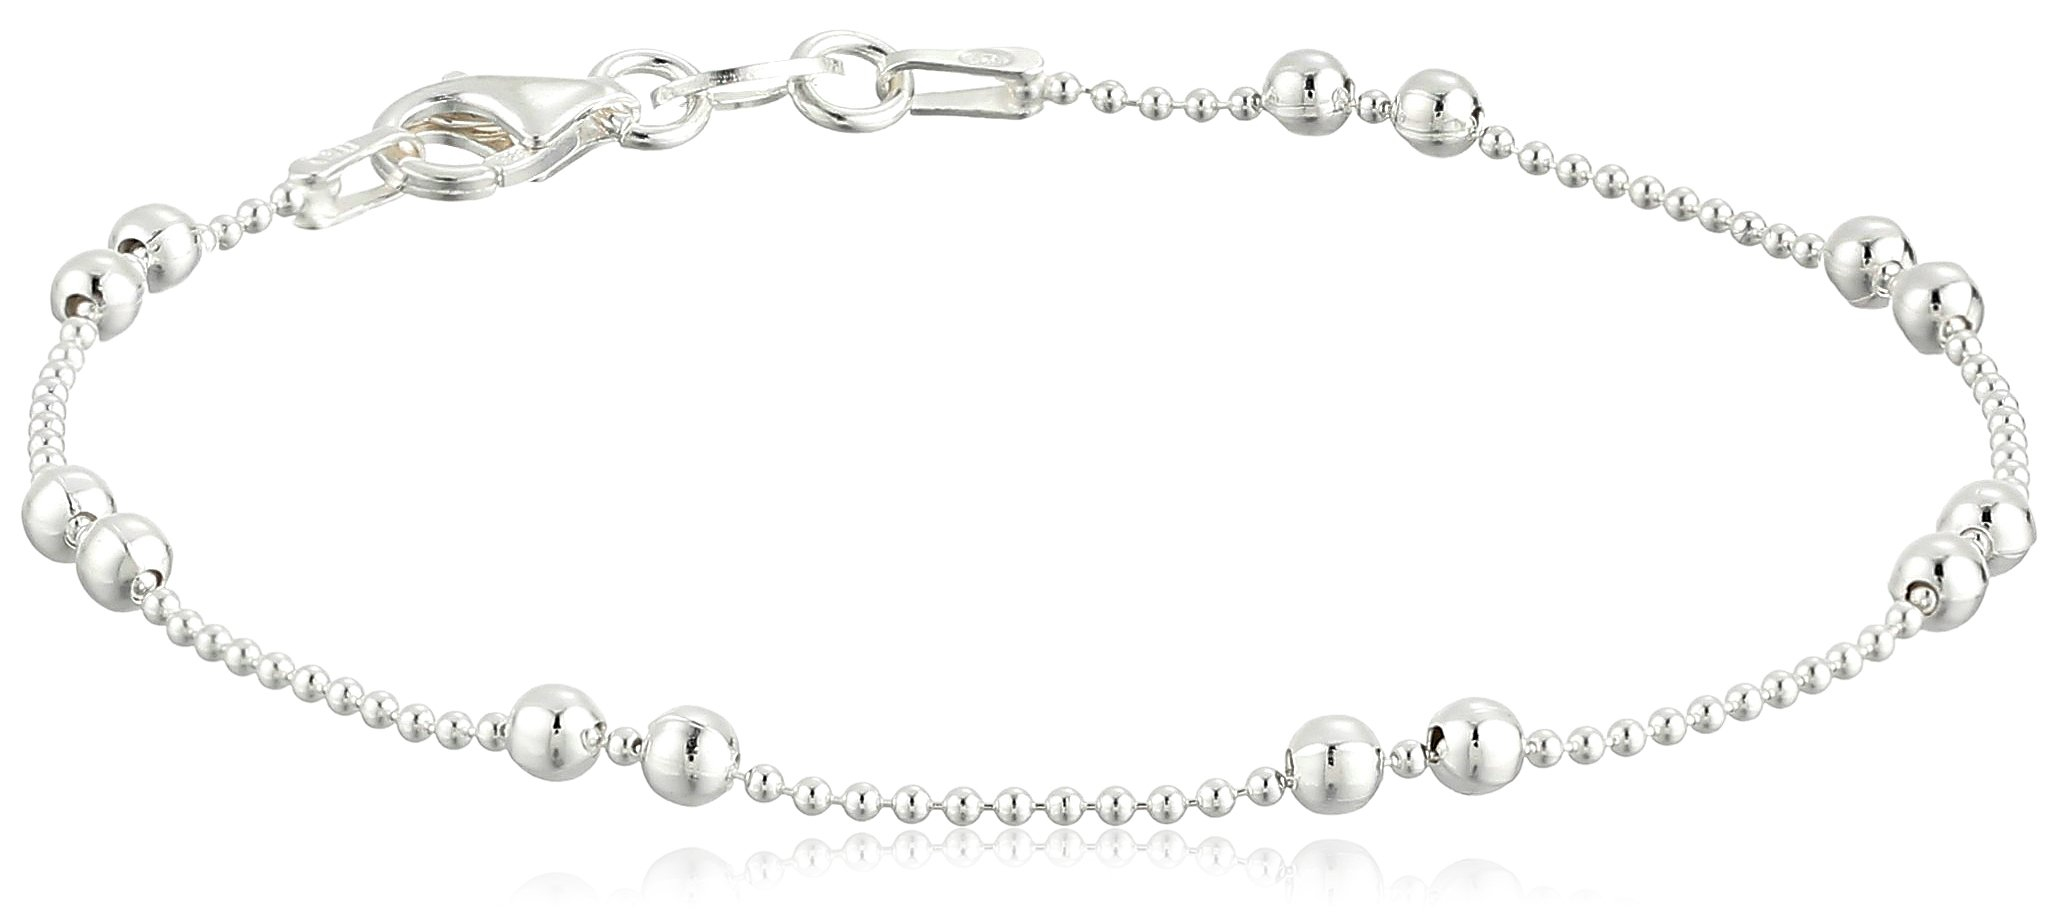 Sterling Silver Tarnish Free Shot Bead Bracelet with Double Bead Stations, 7.5''